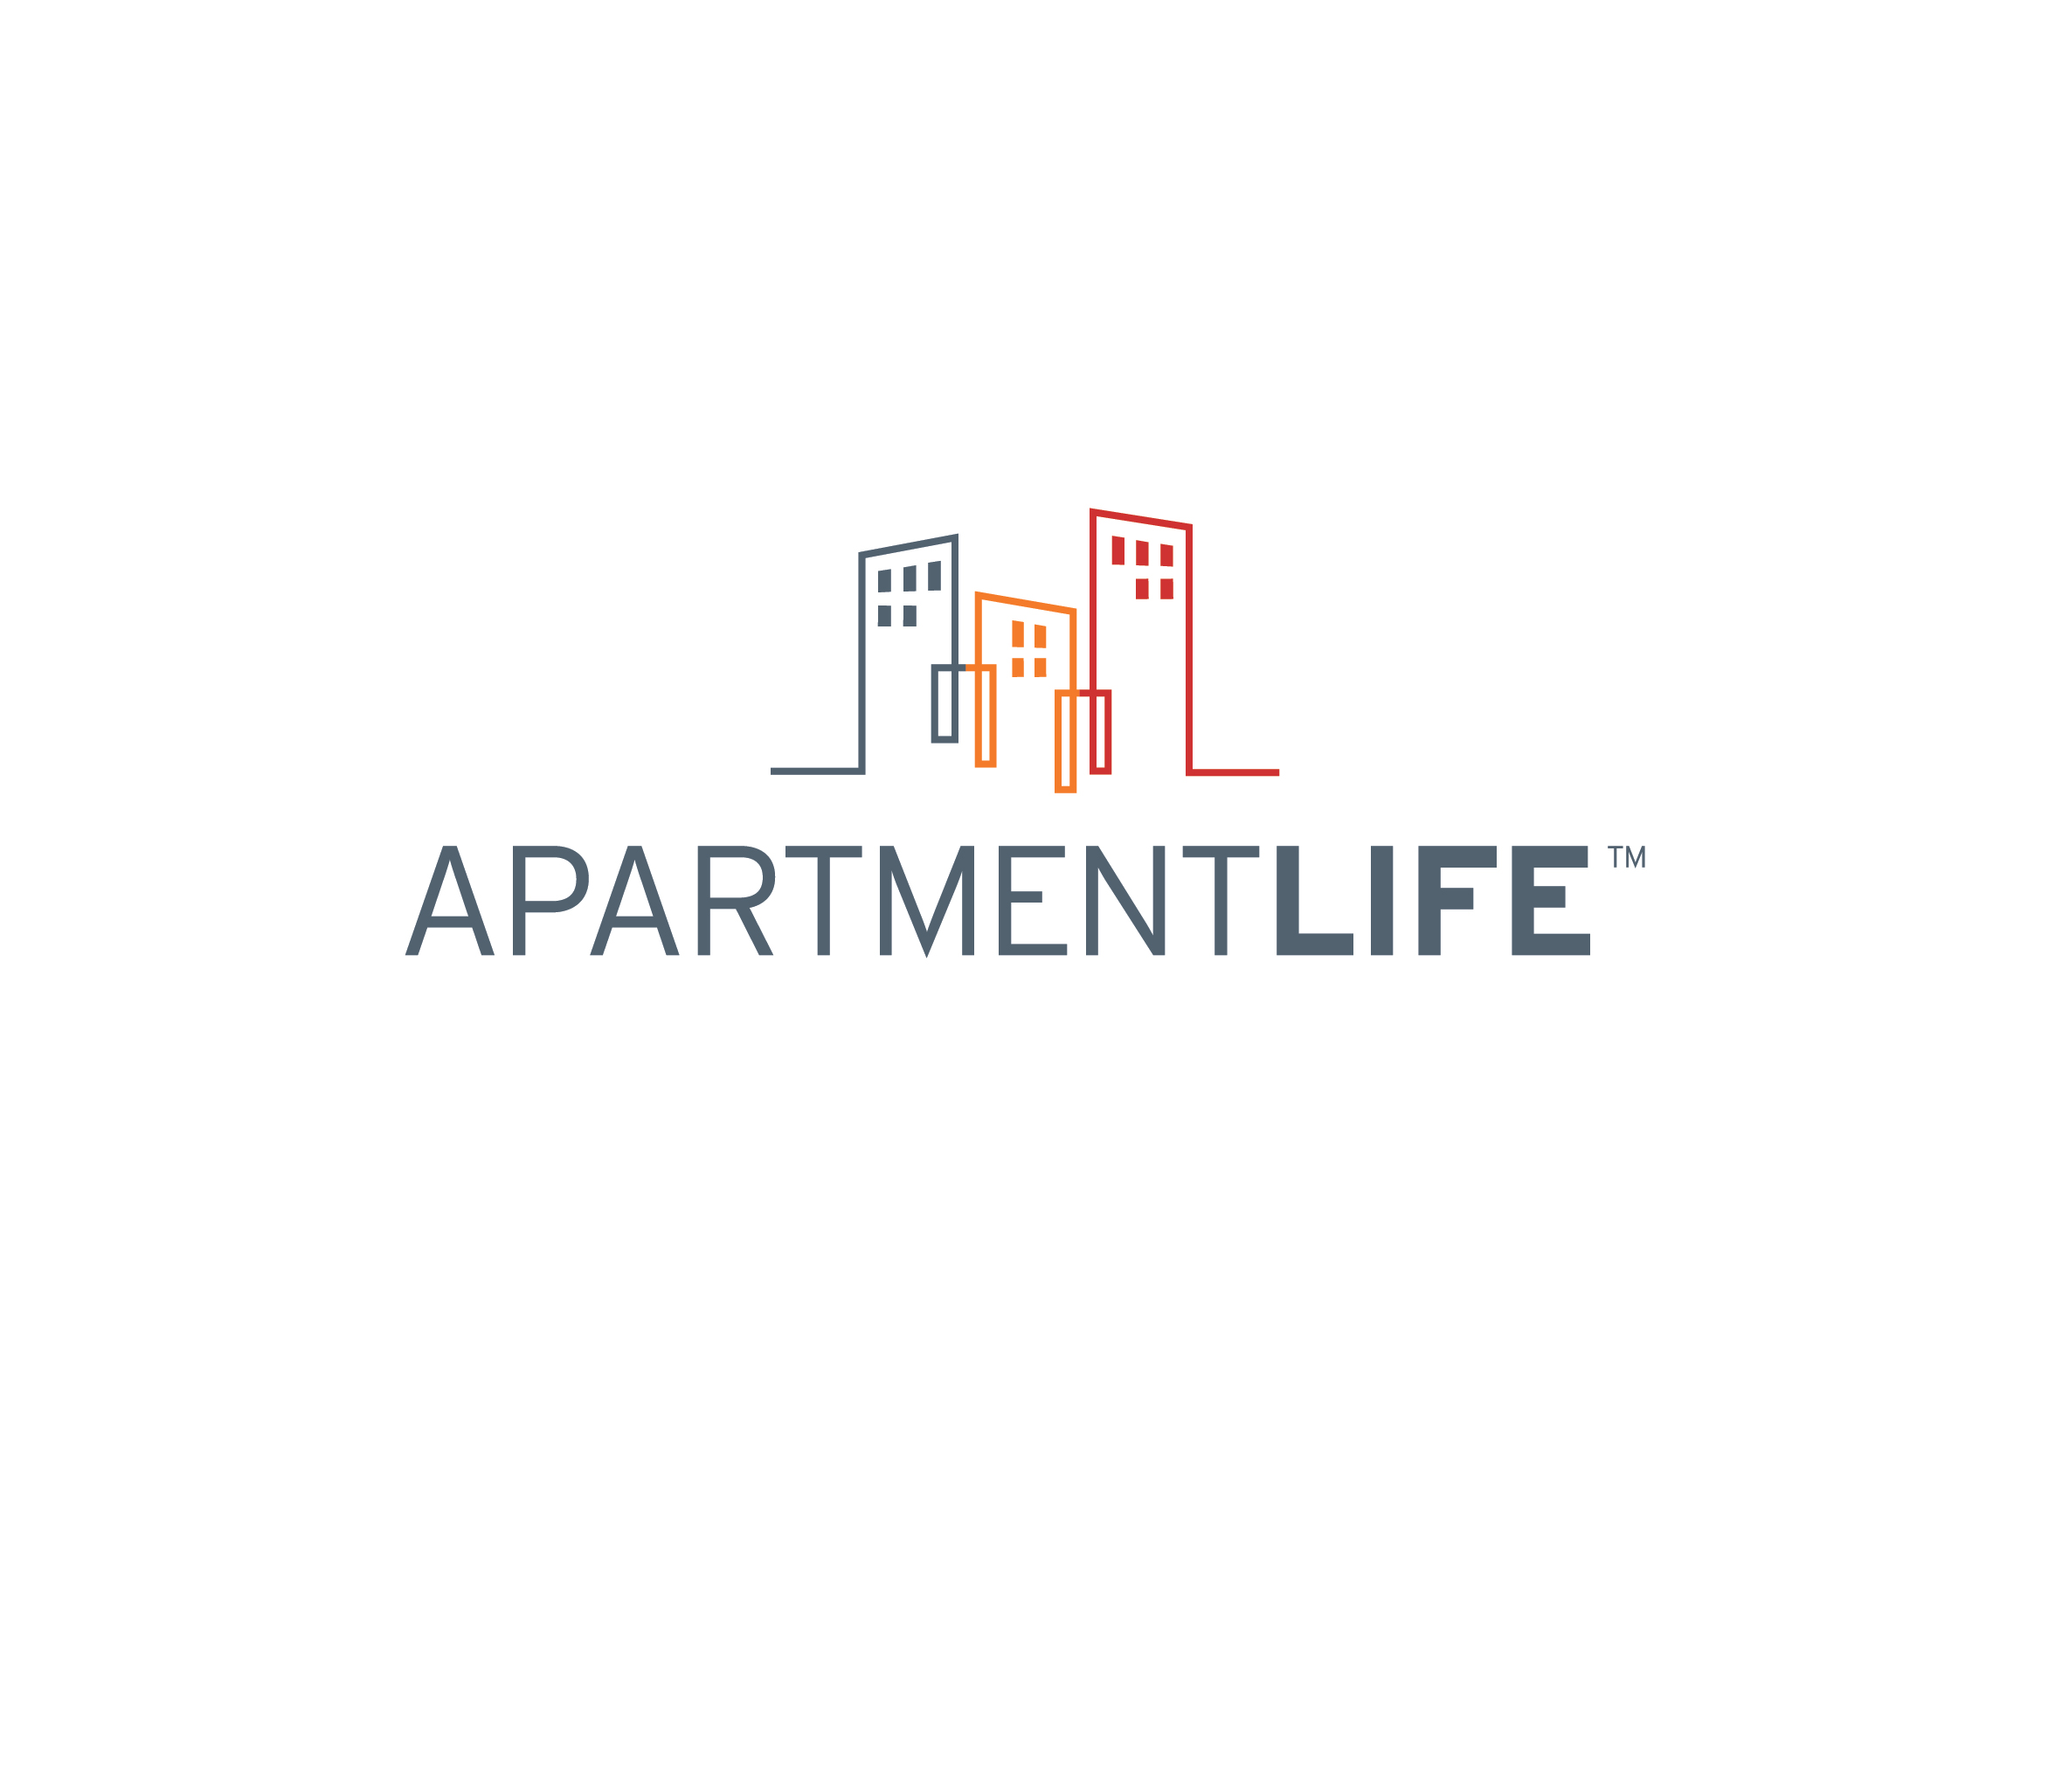 Apartment Life Marketing Team